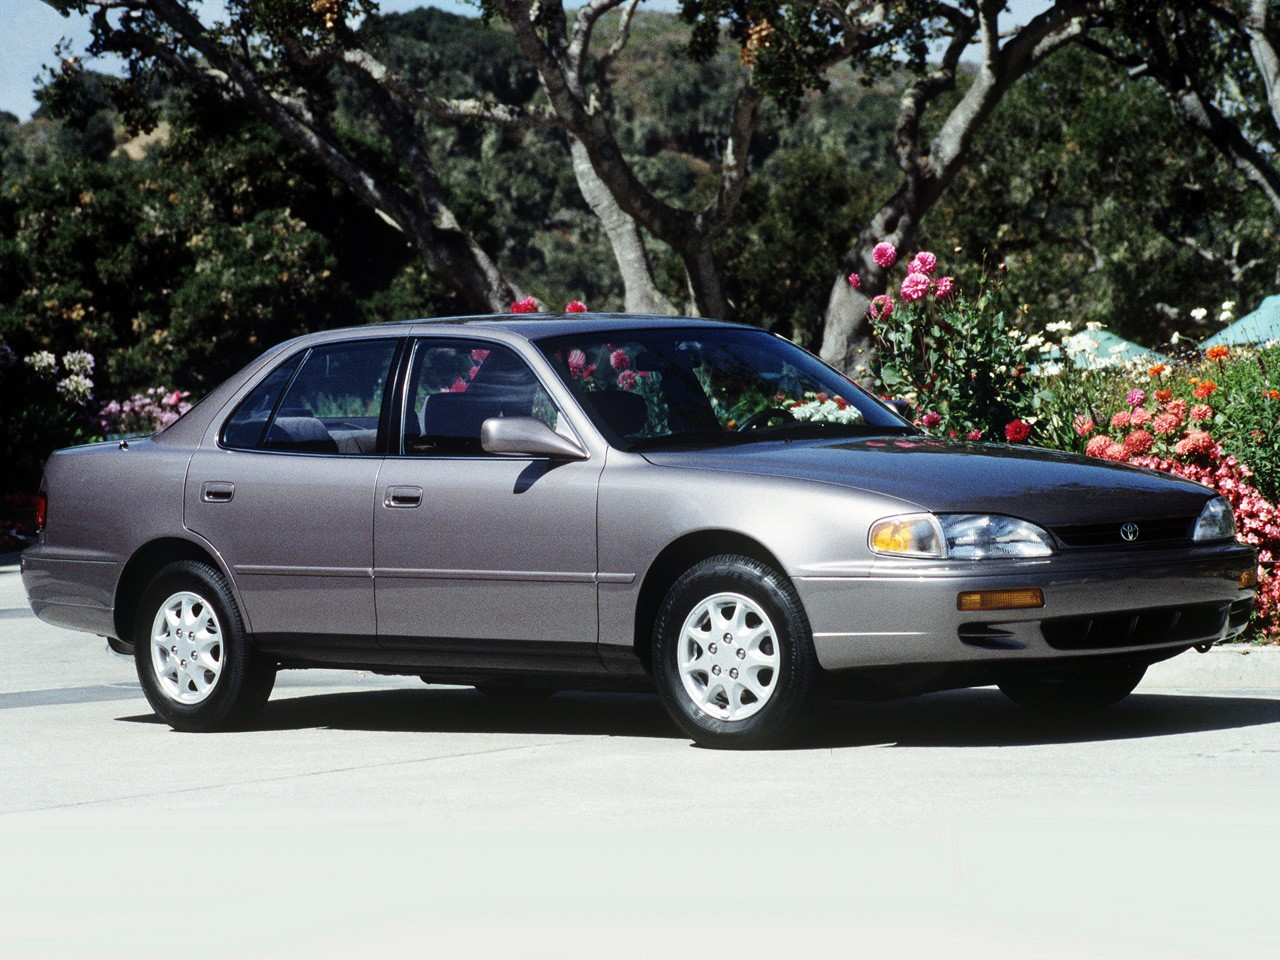 toyota camry specs 1991 1992 1993 1994 1995 1996 autoevolution. Black Bedroom Furniture Sets. Home Design Ideas